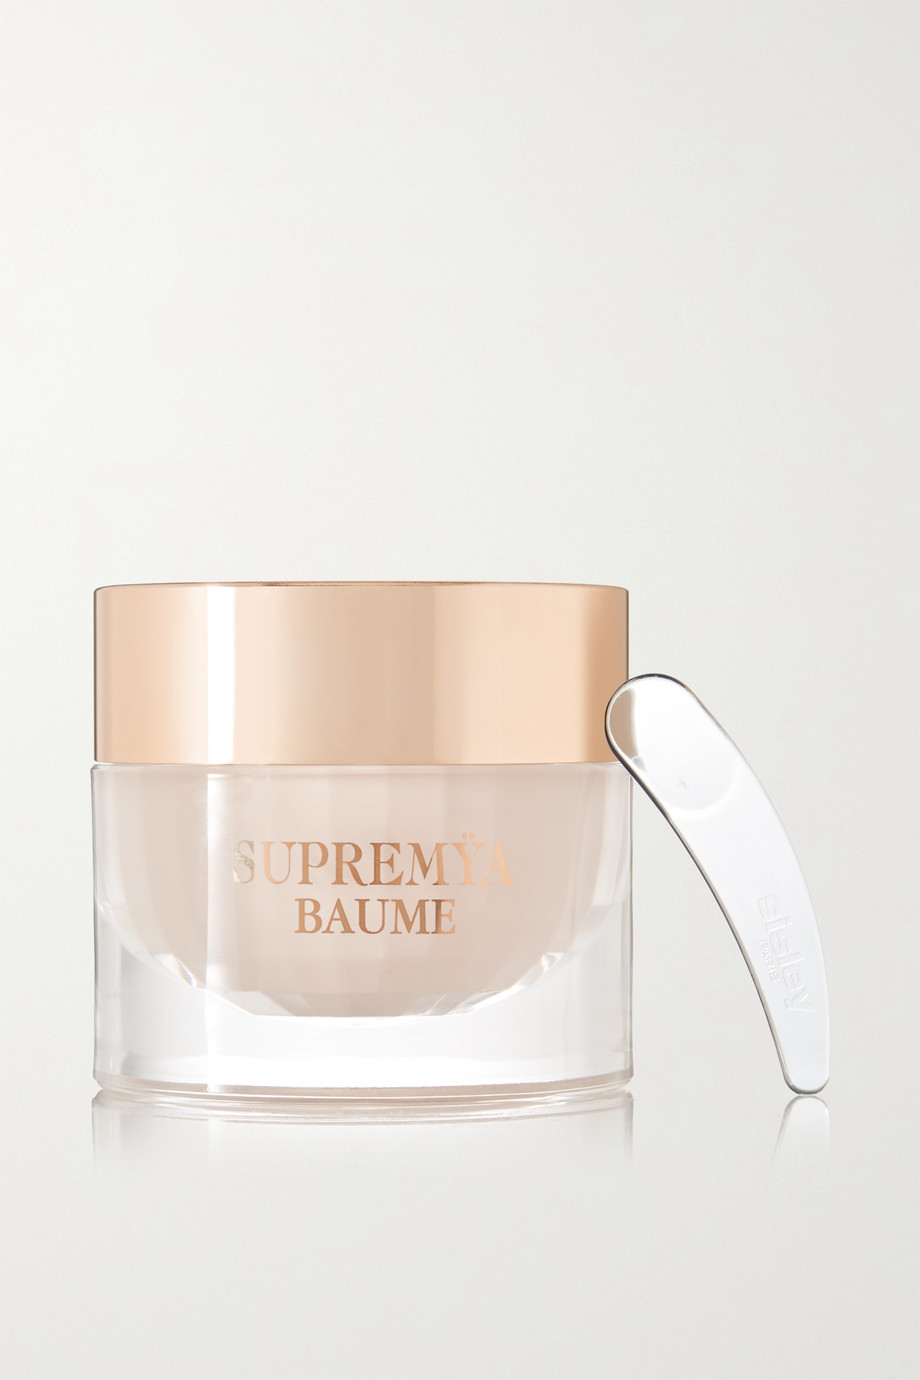 At Night The Supreme Anti-Aging Cream, 50ml, by Sisley - Paris